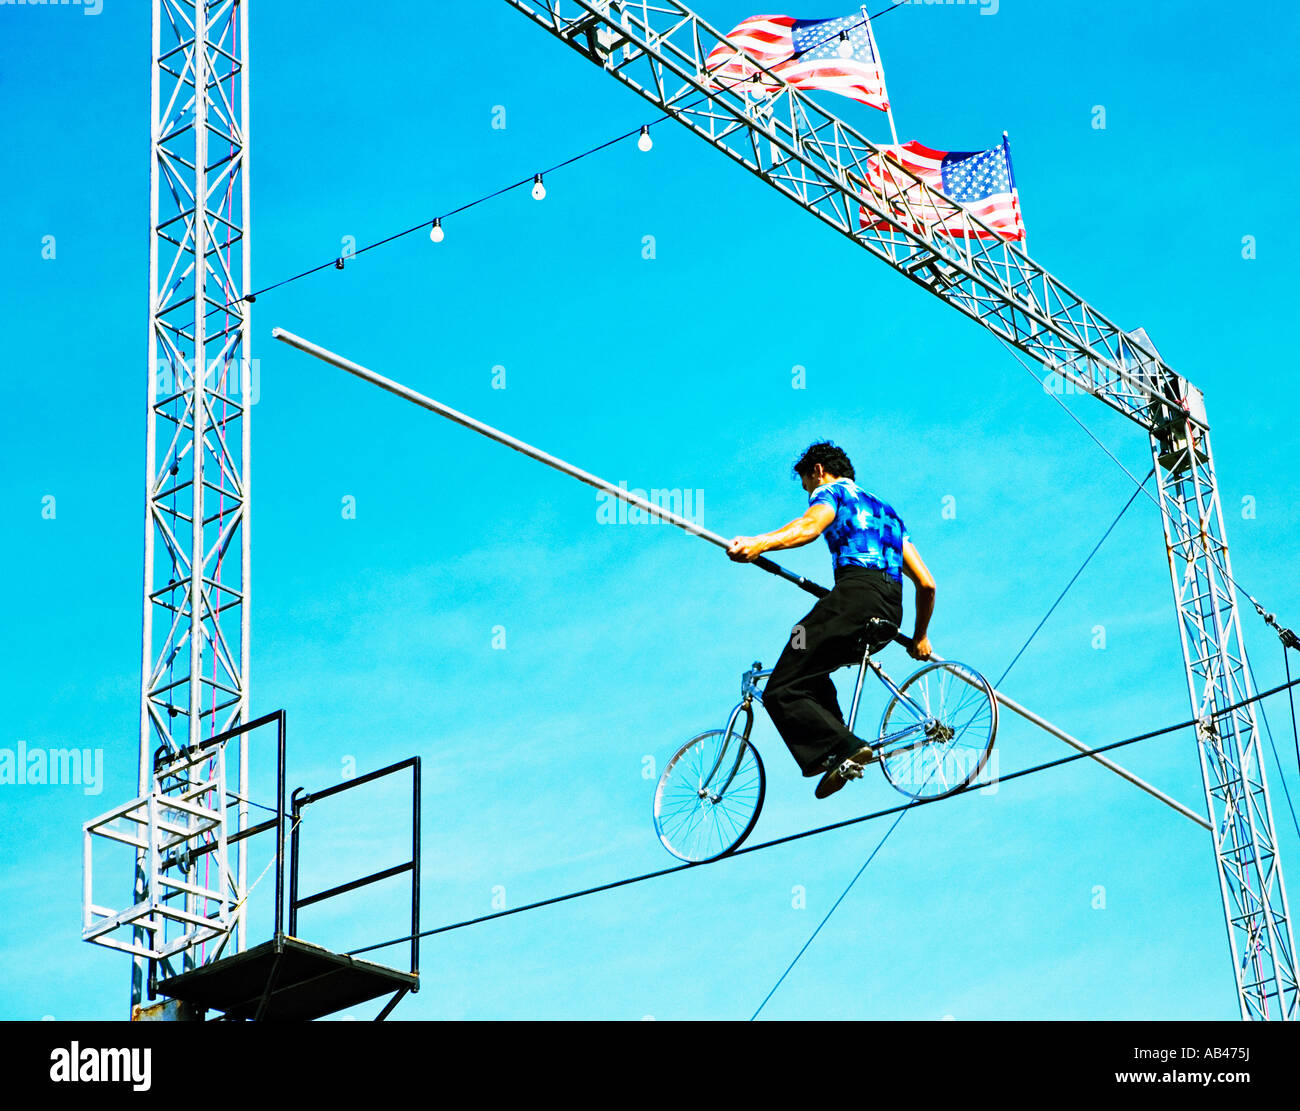 high wire walker riding bicycle set against blue sky with American ...